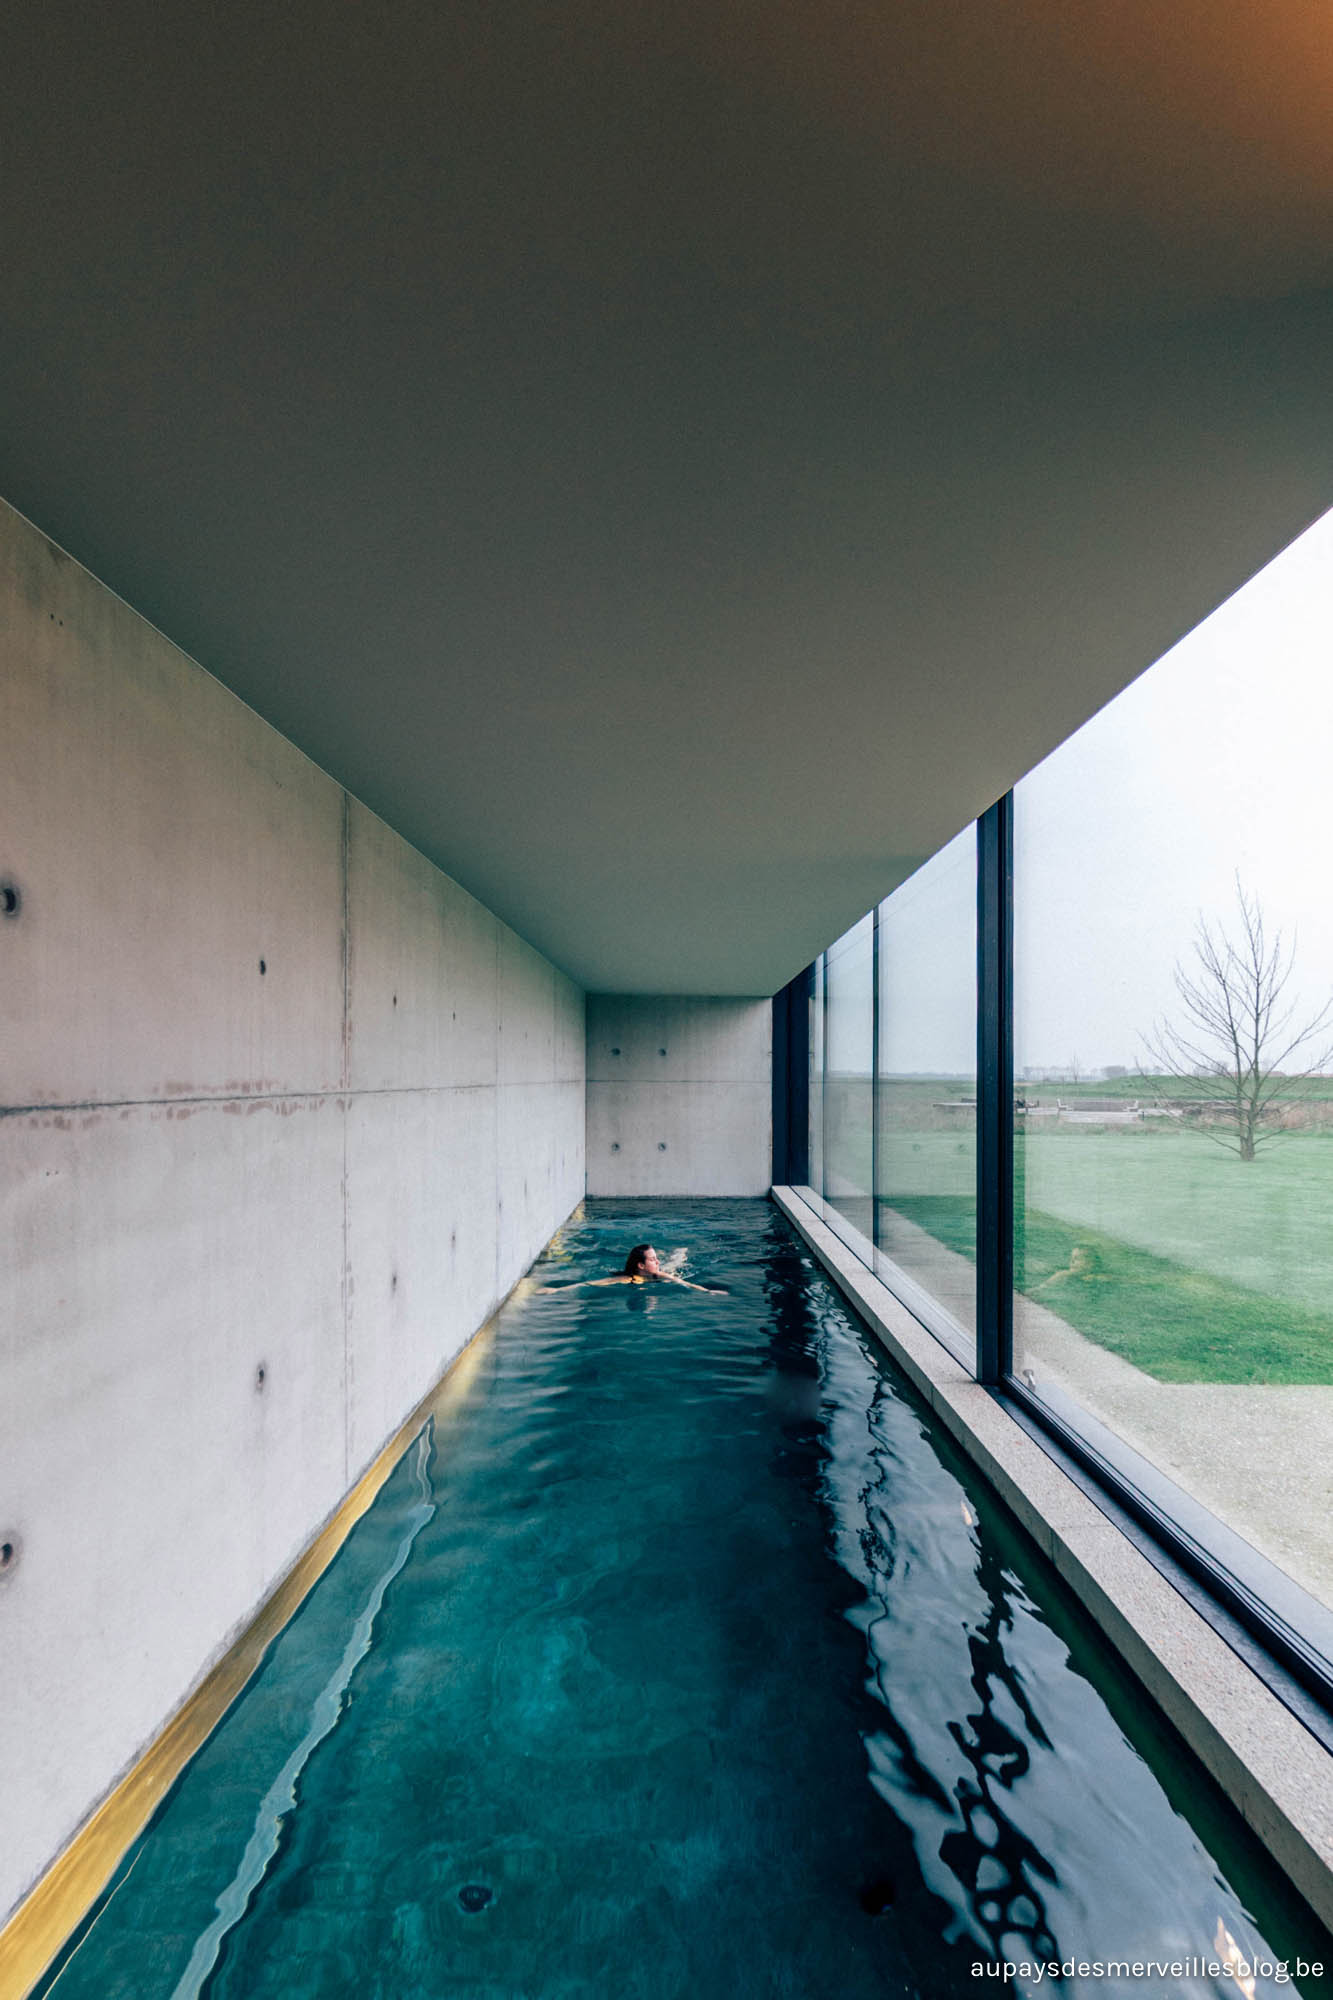 B&B The Bunkers in Knokke-Heist - Hannelore Veelaert for au pays des merveilles